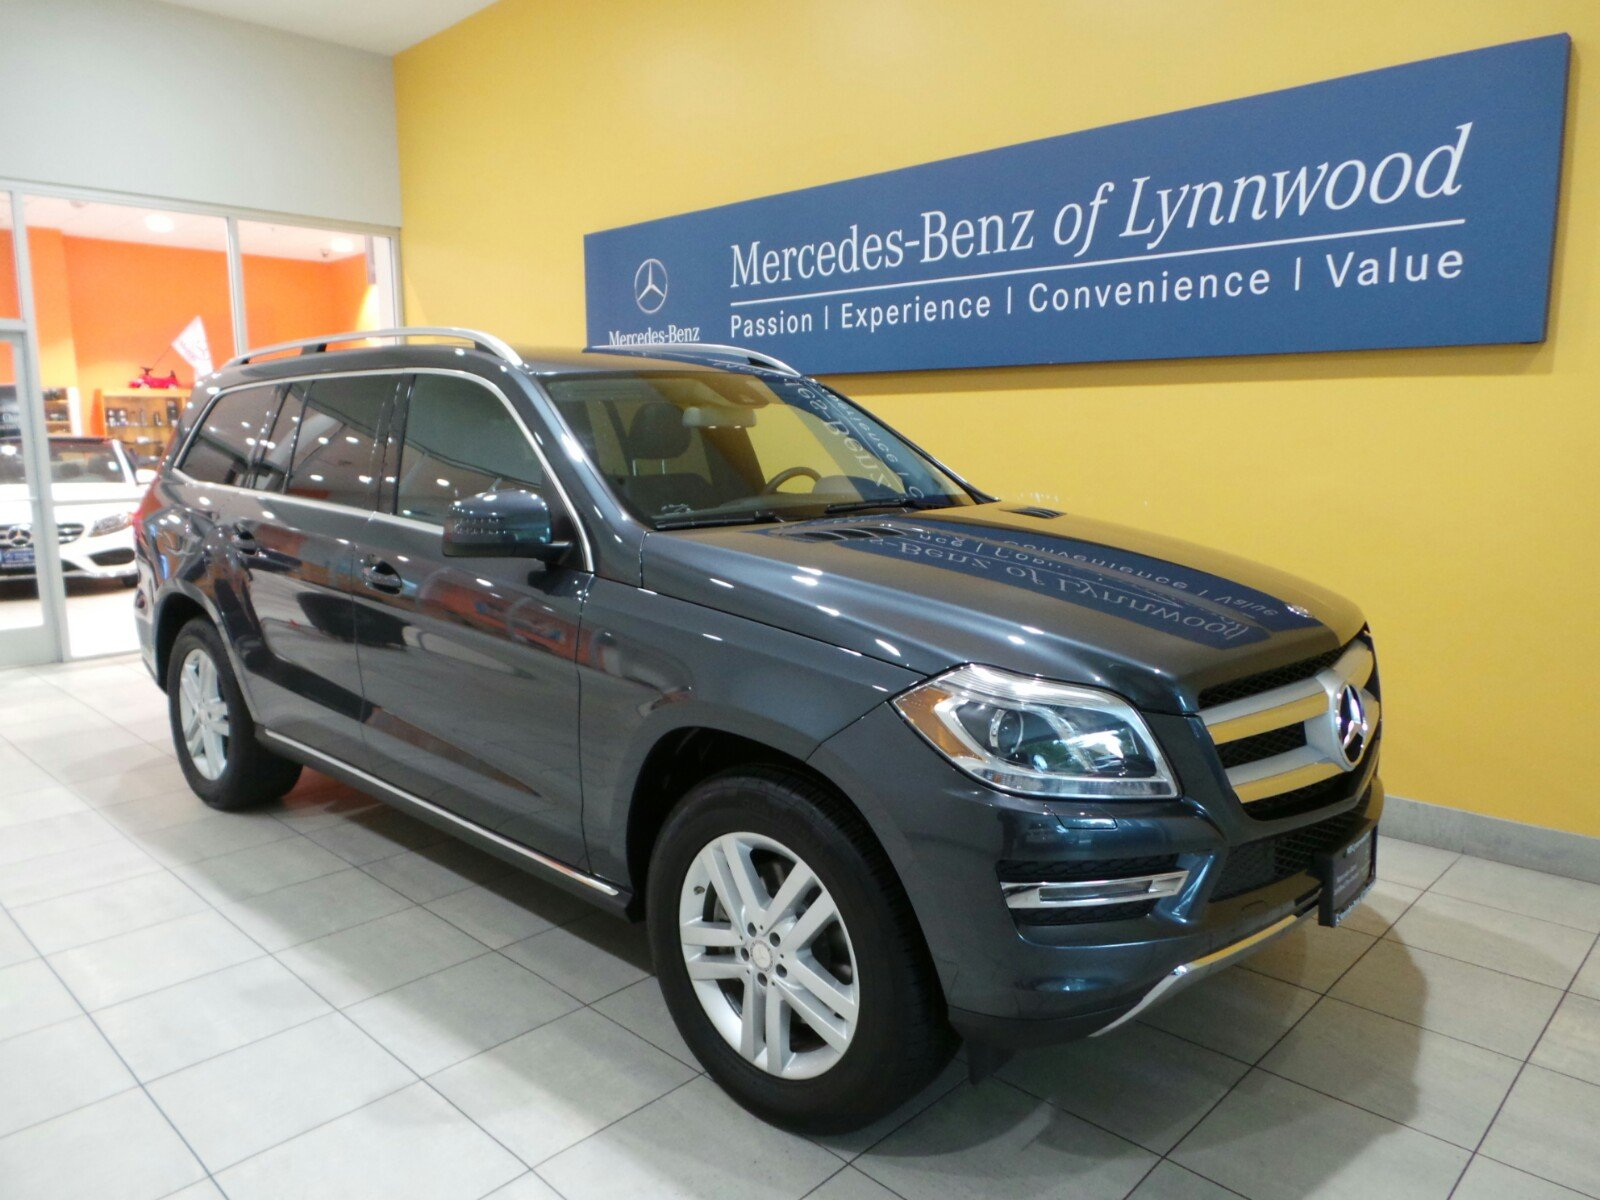 Pre owned 2014 mercedes benz gl class gl450 4matic suv in for 2014 mercedes benz gl450